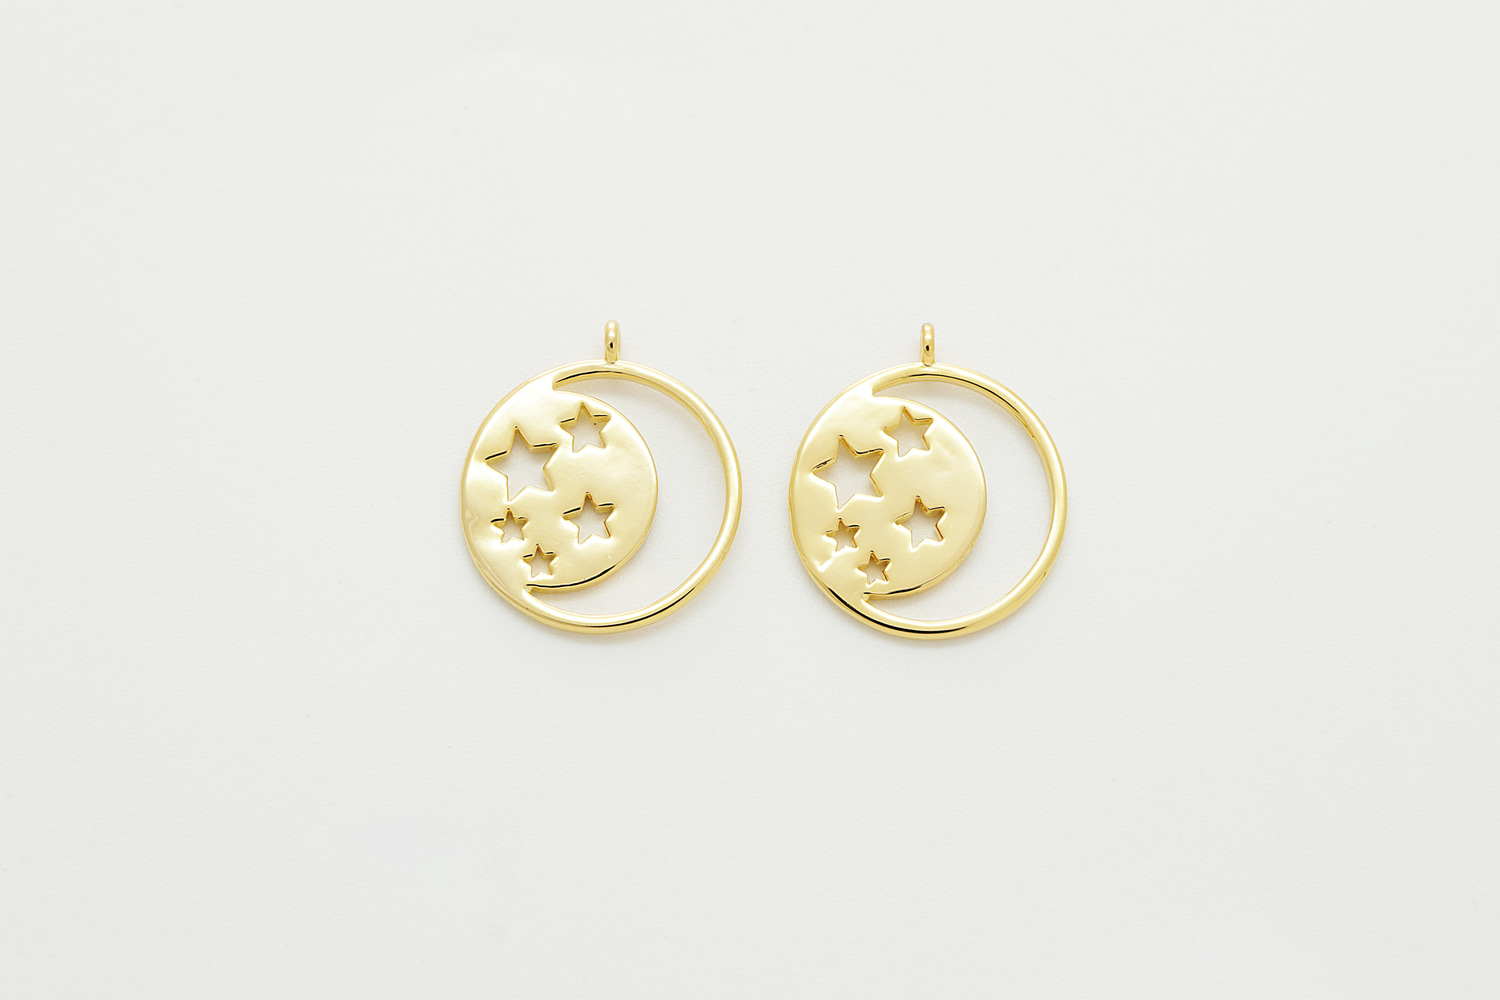 [M2-P3G] Moon and stars charm, Brass, Nickel free, Dainty round pendant, Jewelry making supplies, 2 pcs